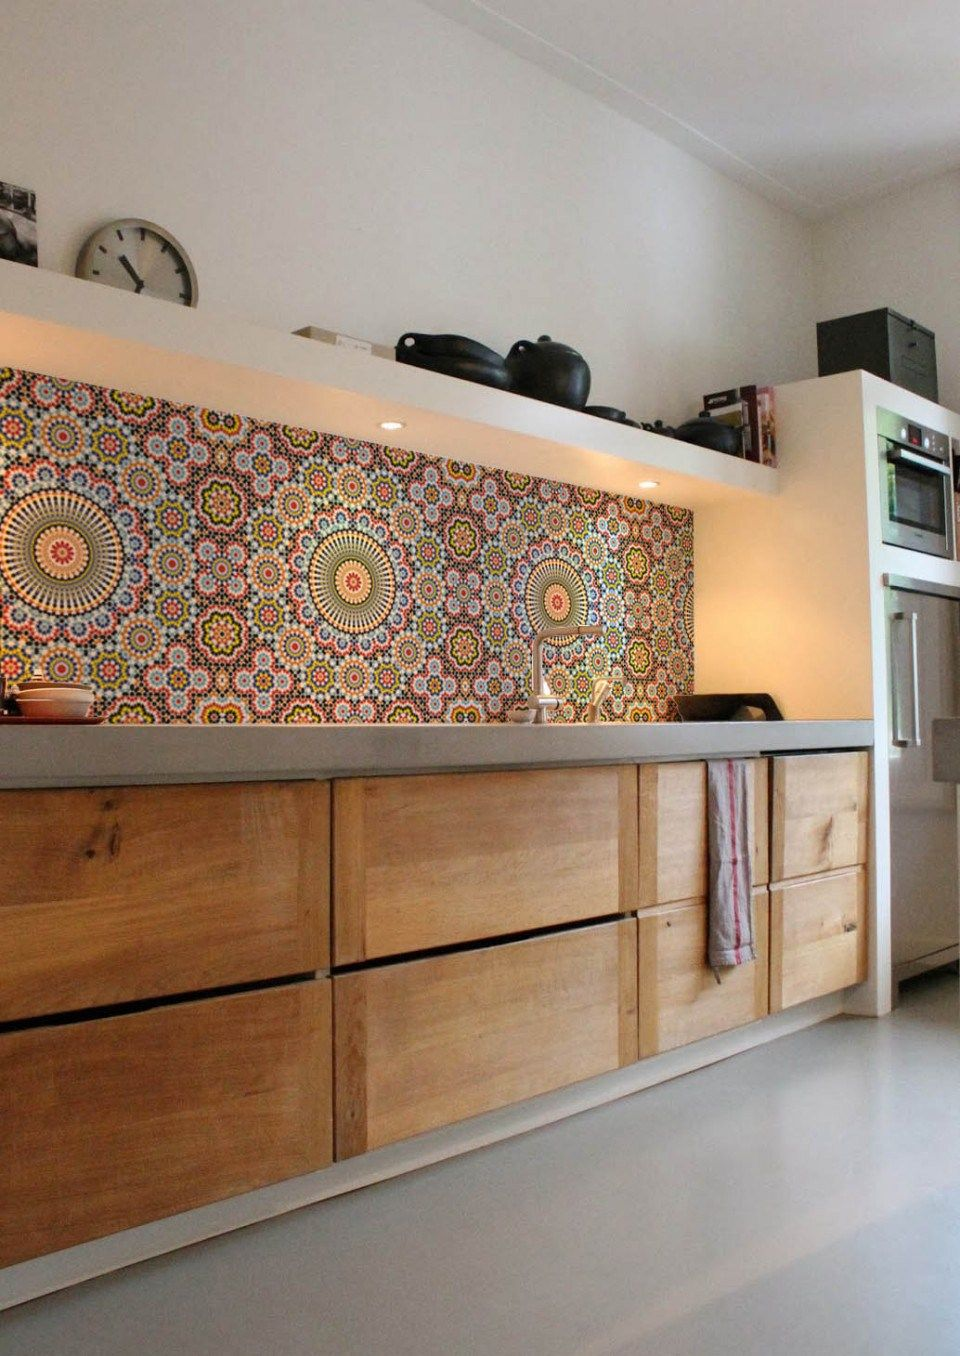 An Alternative Kitchen Splashback - Kitchen Wallpaper by Lime Lace #kitchensplashbacks